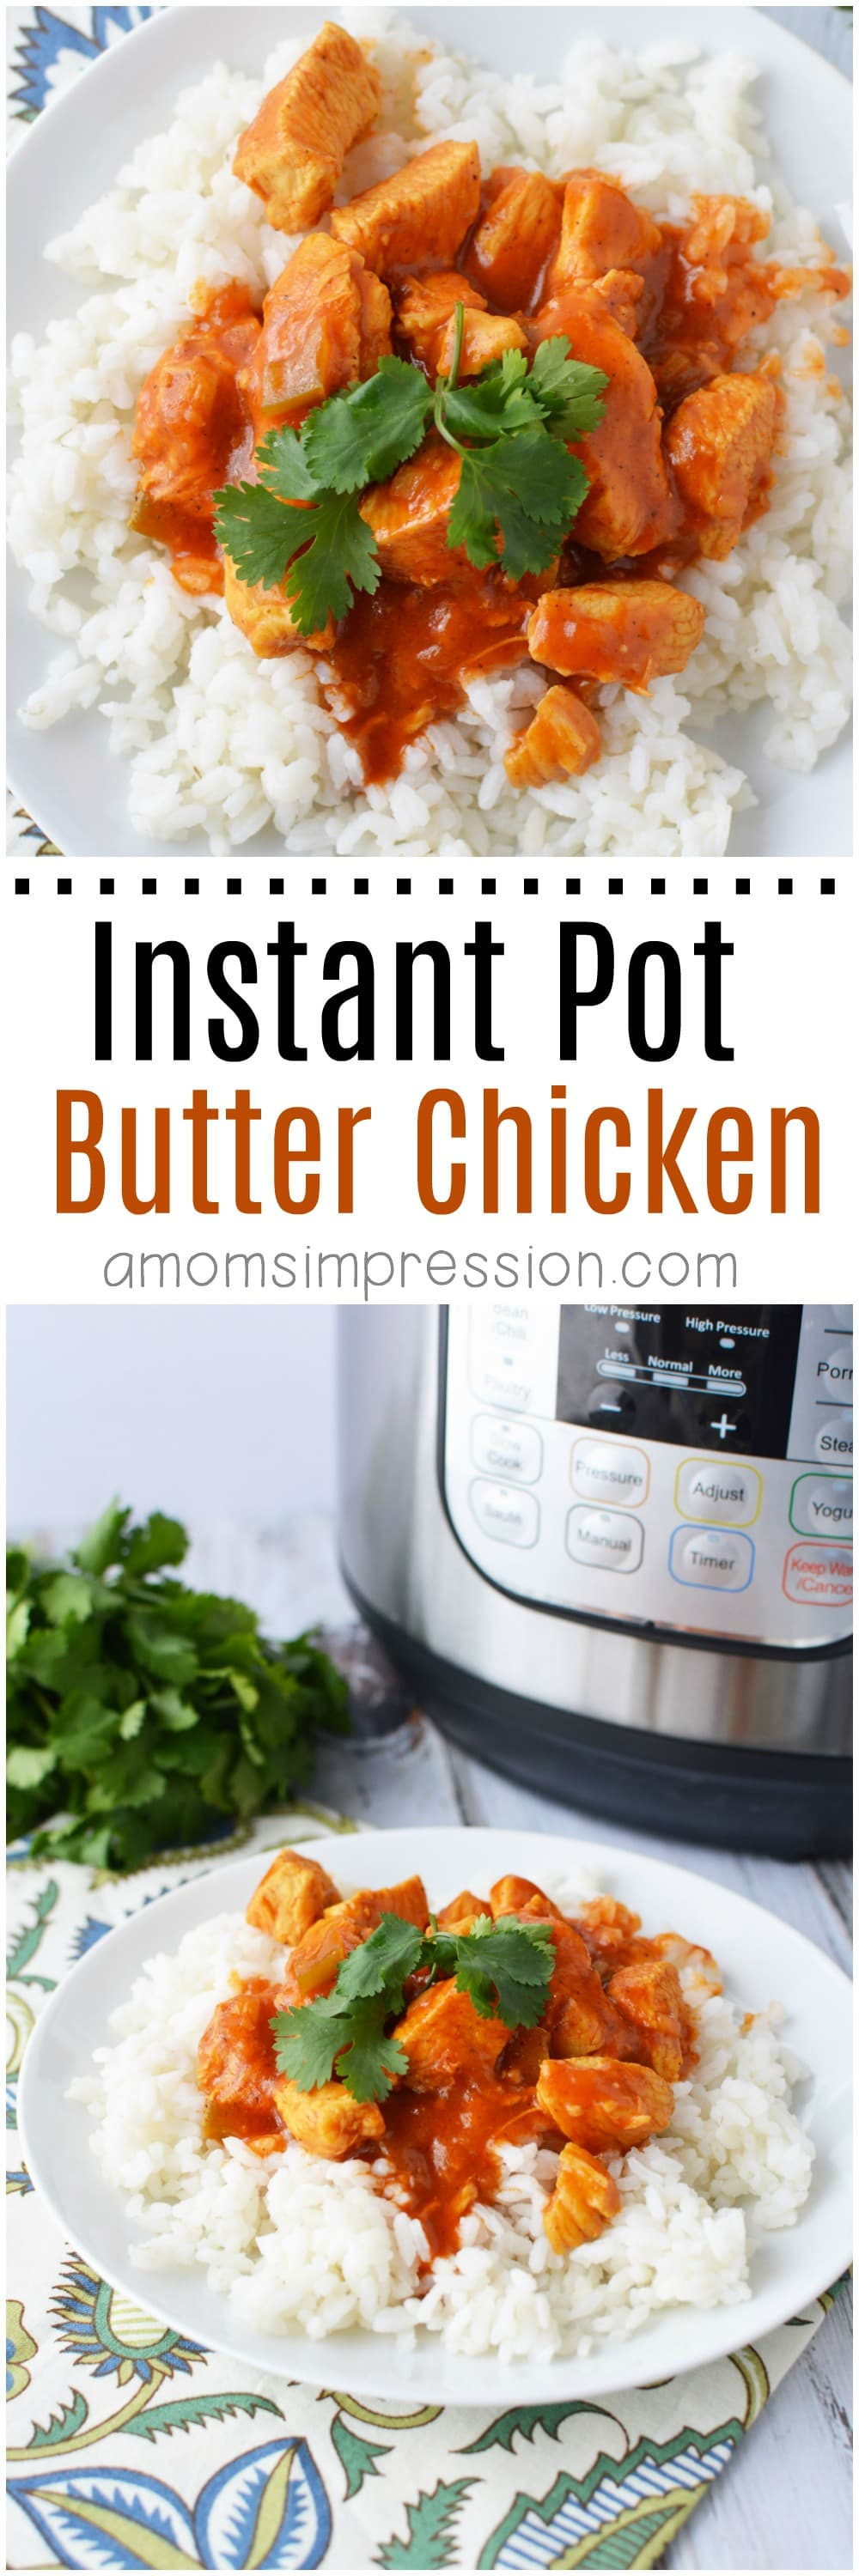 Butter Chicken has never been easier to make than in your electric pressure cooker. This Instant Pot Butter Chicken is easy and delicious and comes with tips on how to make it Paleo and Whole 30 compliant. #InstantPot #InstantPotRecipes #ButterChicken